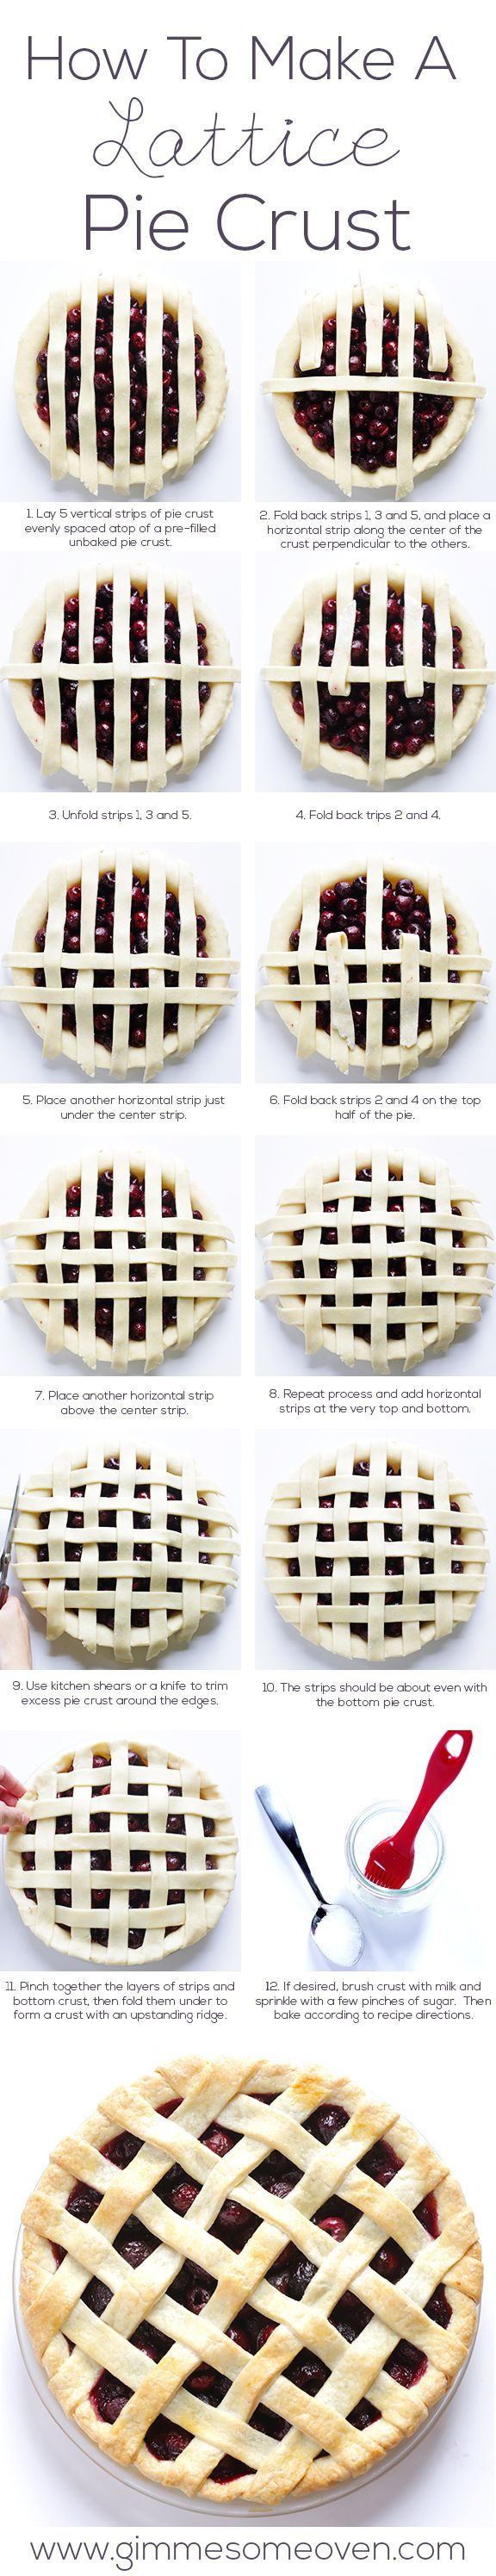 How To Make A Lattice Pie Crust. This looks so much easier than the way I do it. Can't wait to try.: